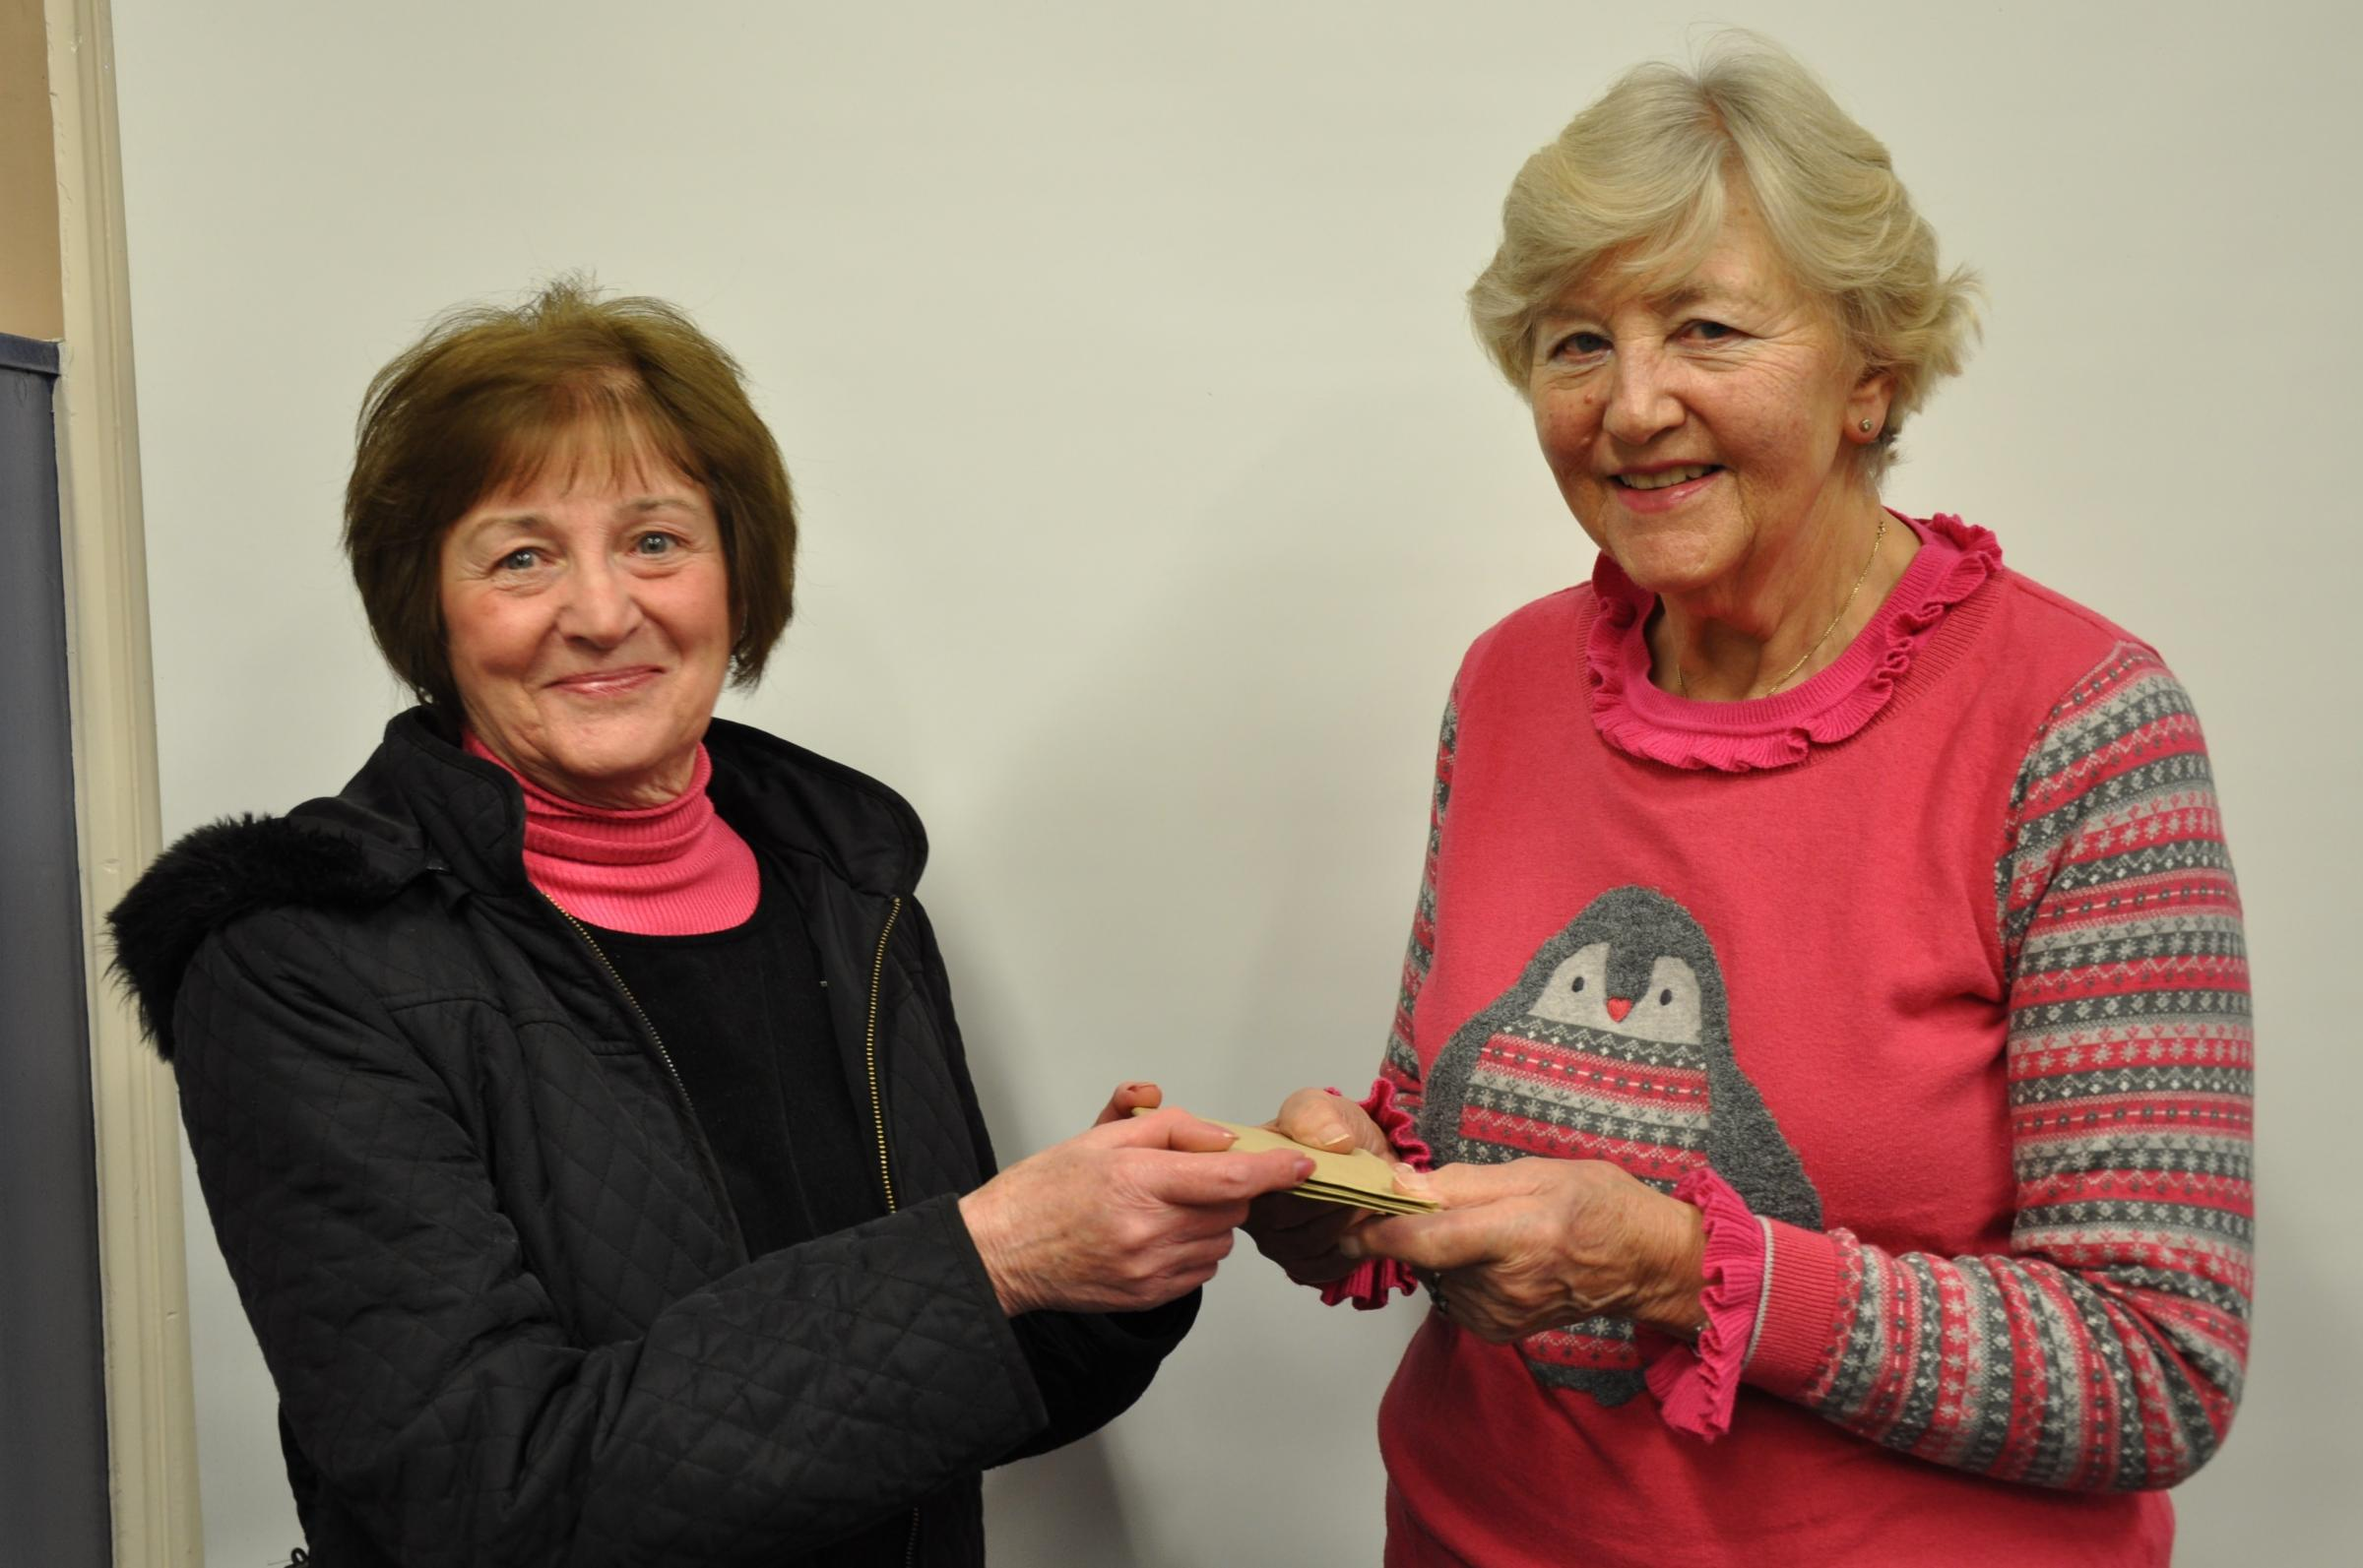 President of Menston Arts Club Anne Wade (pictured right) presents a cheque for £150 to Judith Knaggs of Help for Heroes